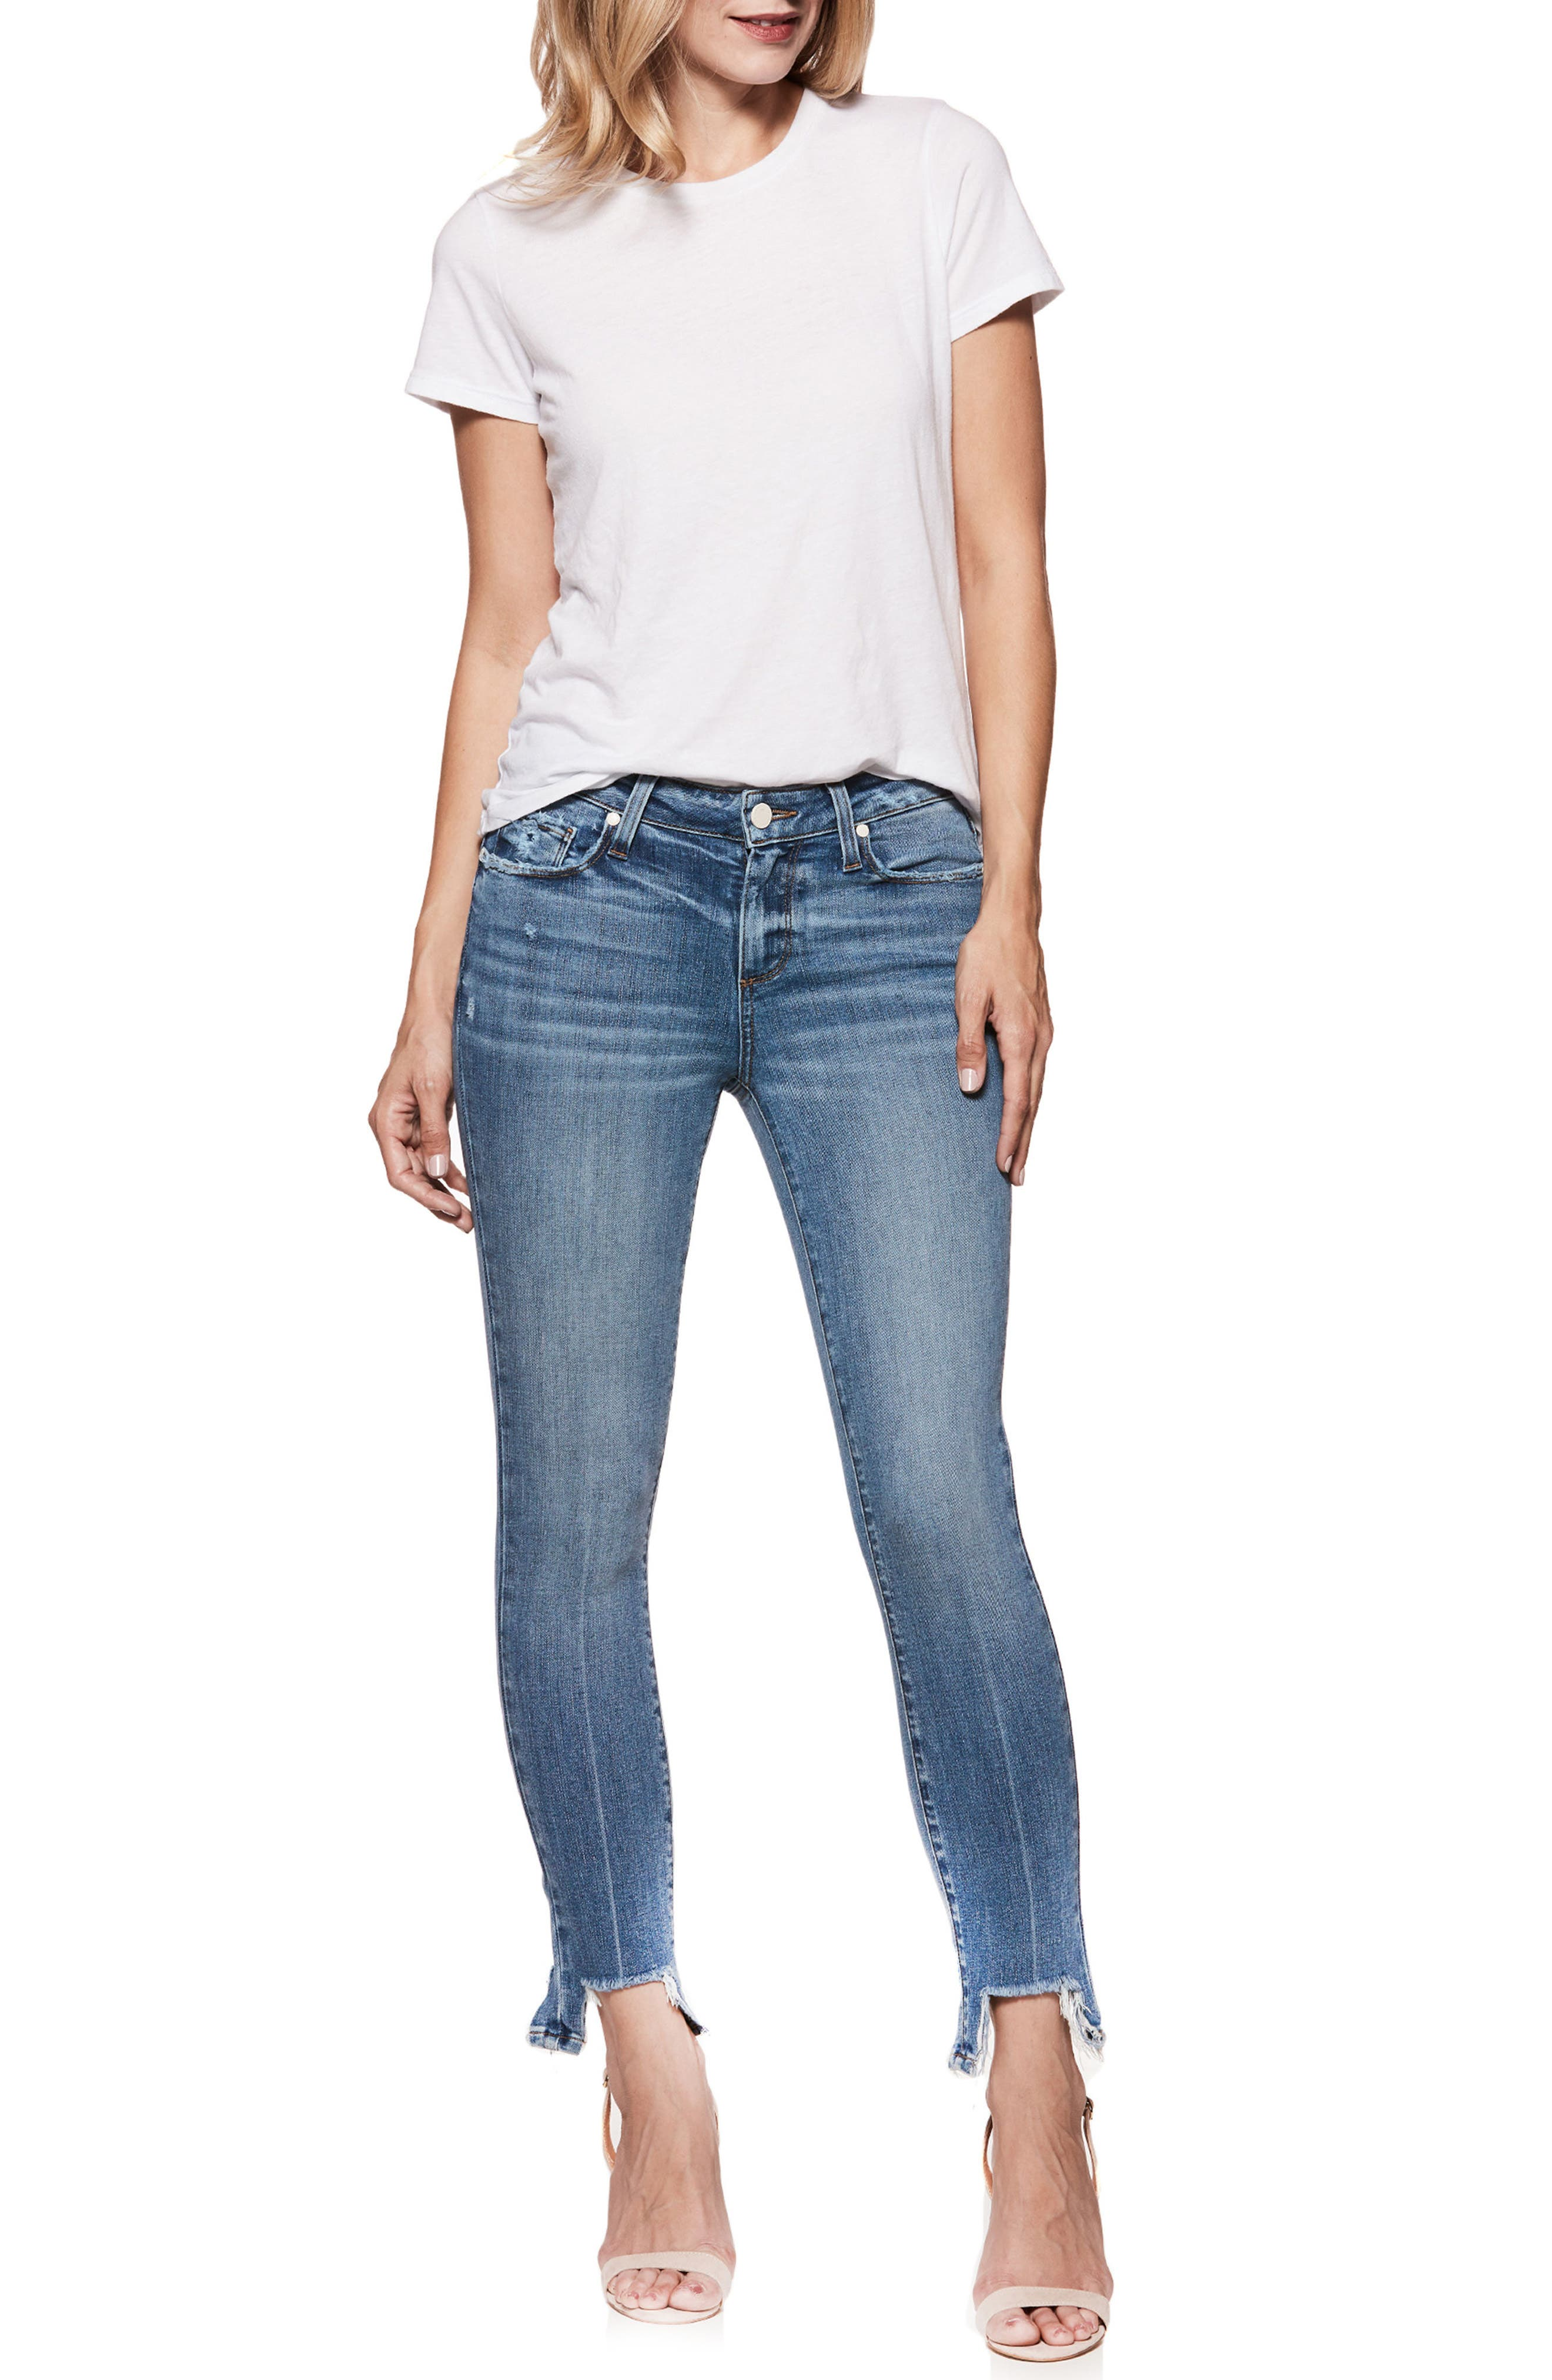 Transcend Vintage - Hoxton High Waist Ankle Skinny Jeans,                             Alternate thumbnail 3, color,                             Zahara